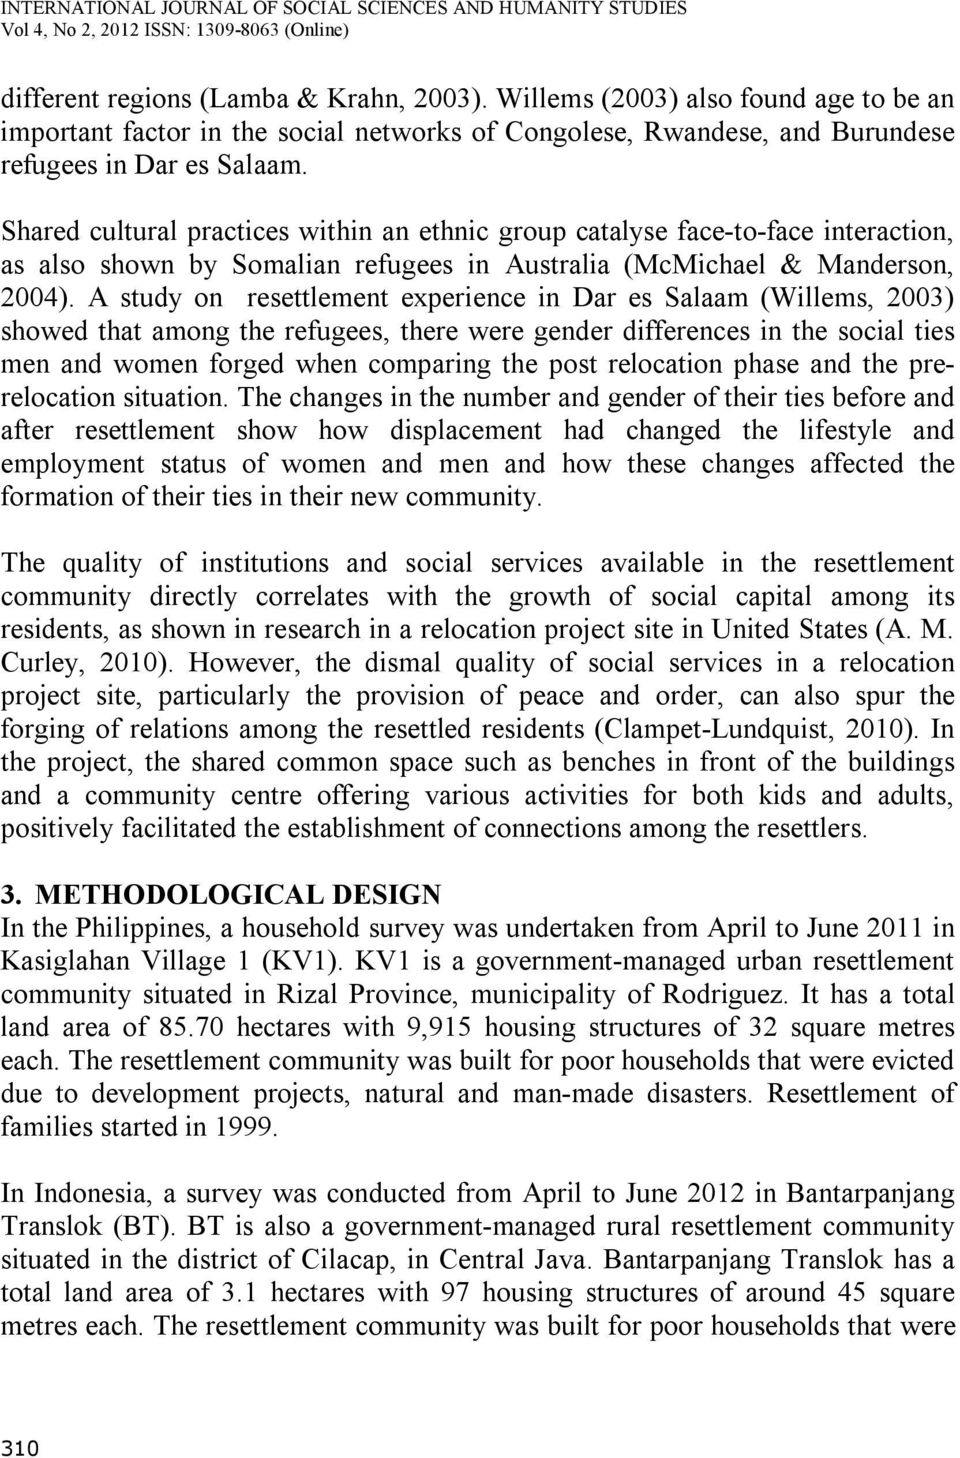 A study on resettlement experience in Dar es Salaam (Willems, 2003) showed that among the refugees, there were gender differences in the social ties men and women forged when comparing the post